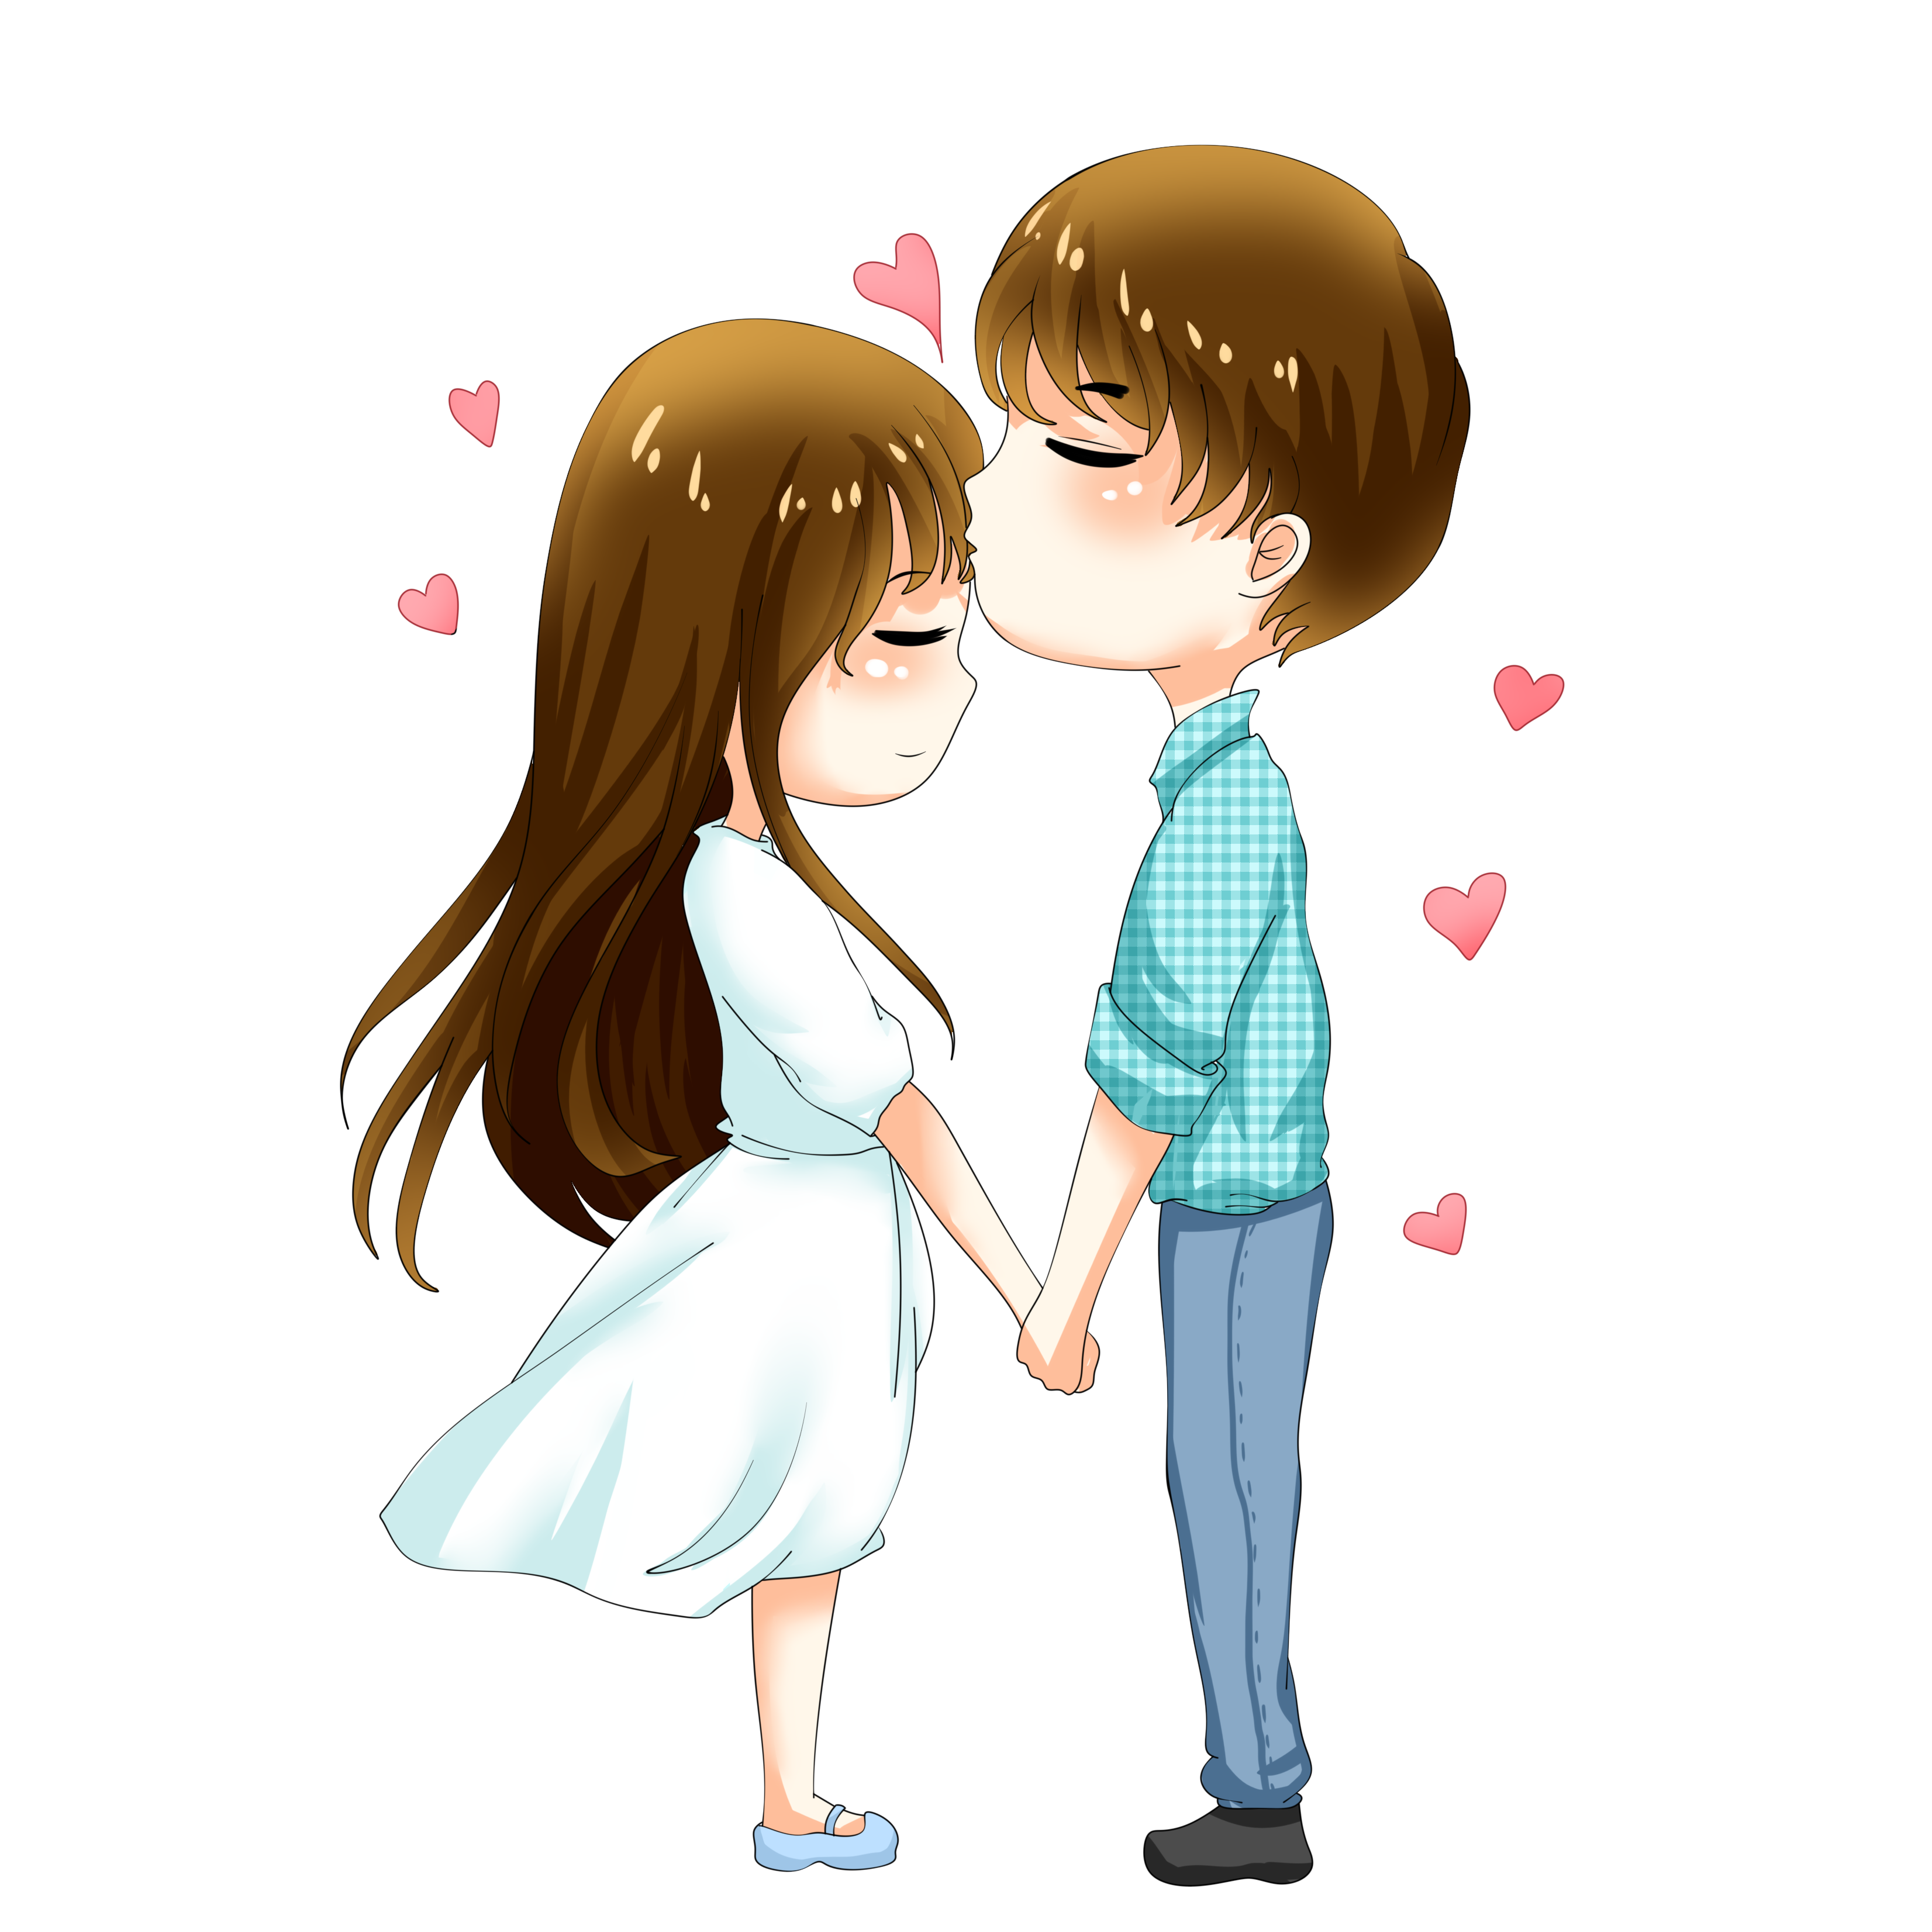 Cute Couple Clipart Png Free Download Cute Love Wallpapers Love Couple Wallpaper Cute Couple Wallpaper